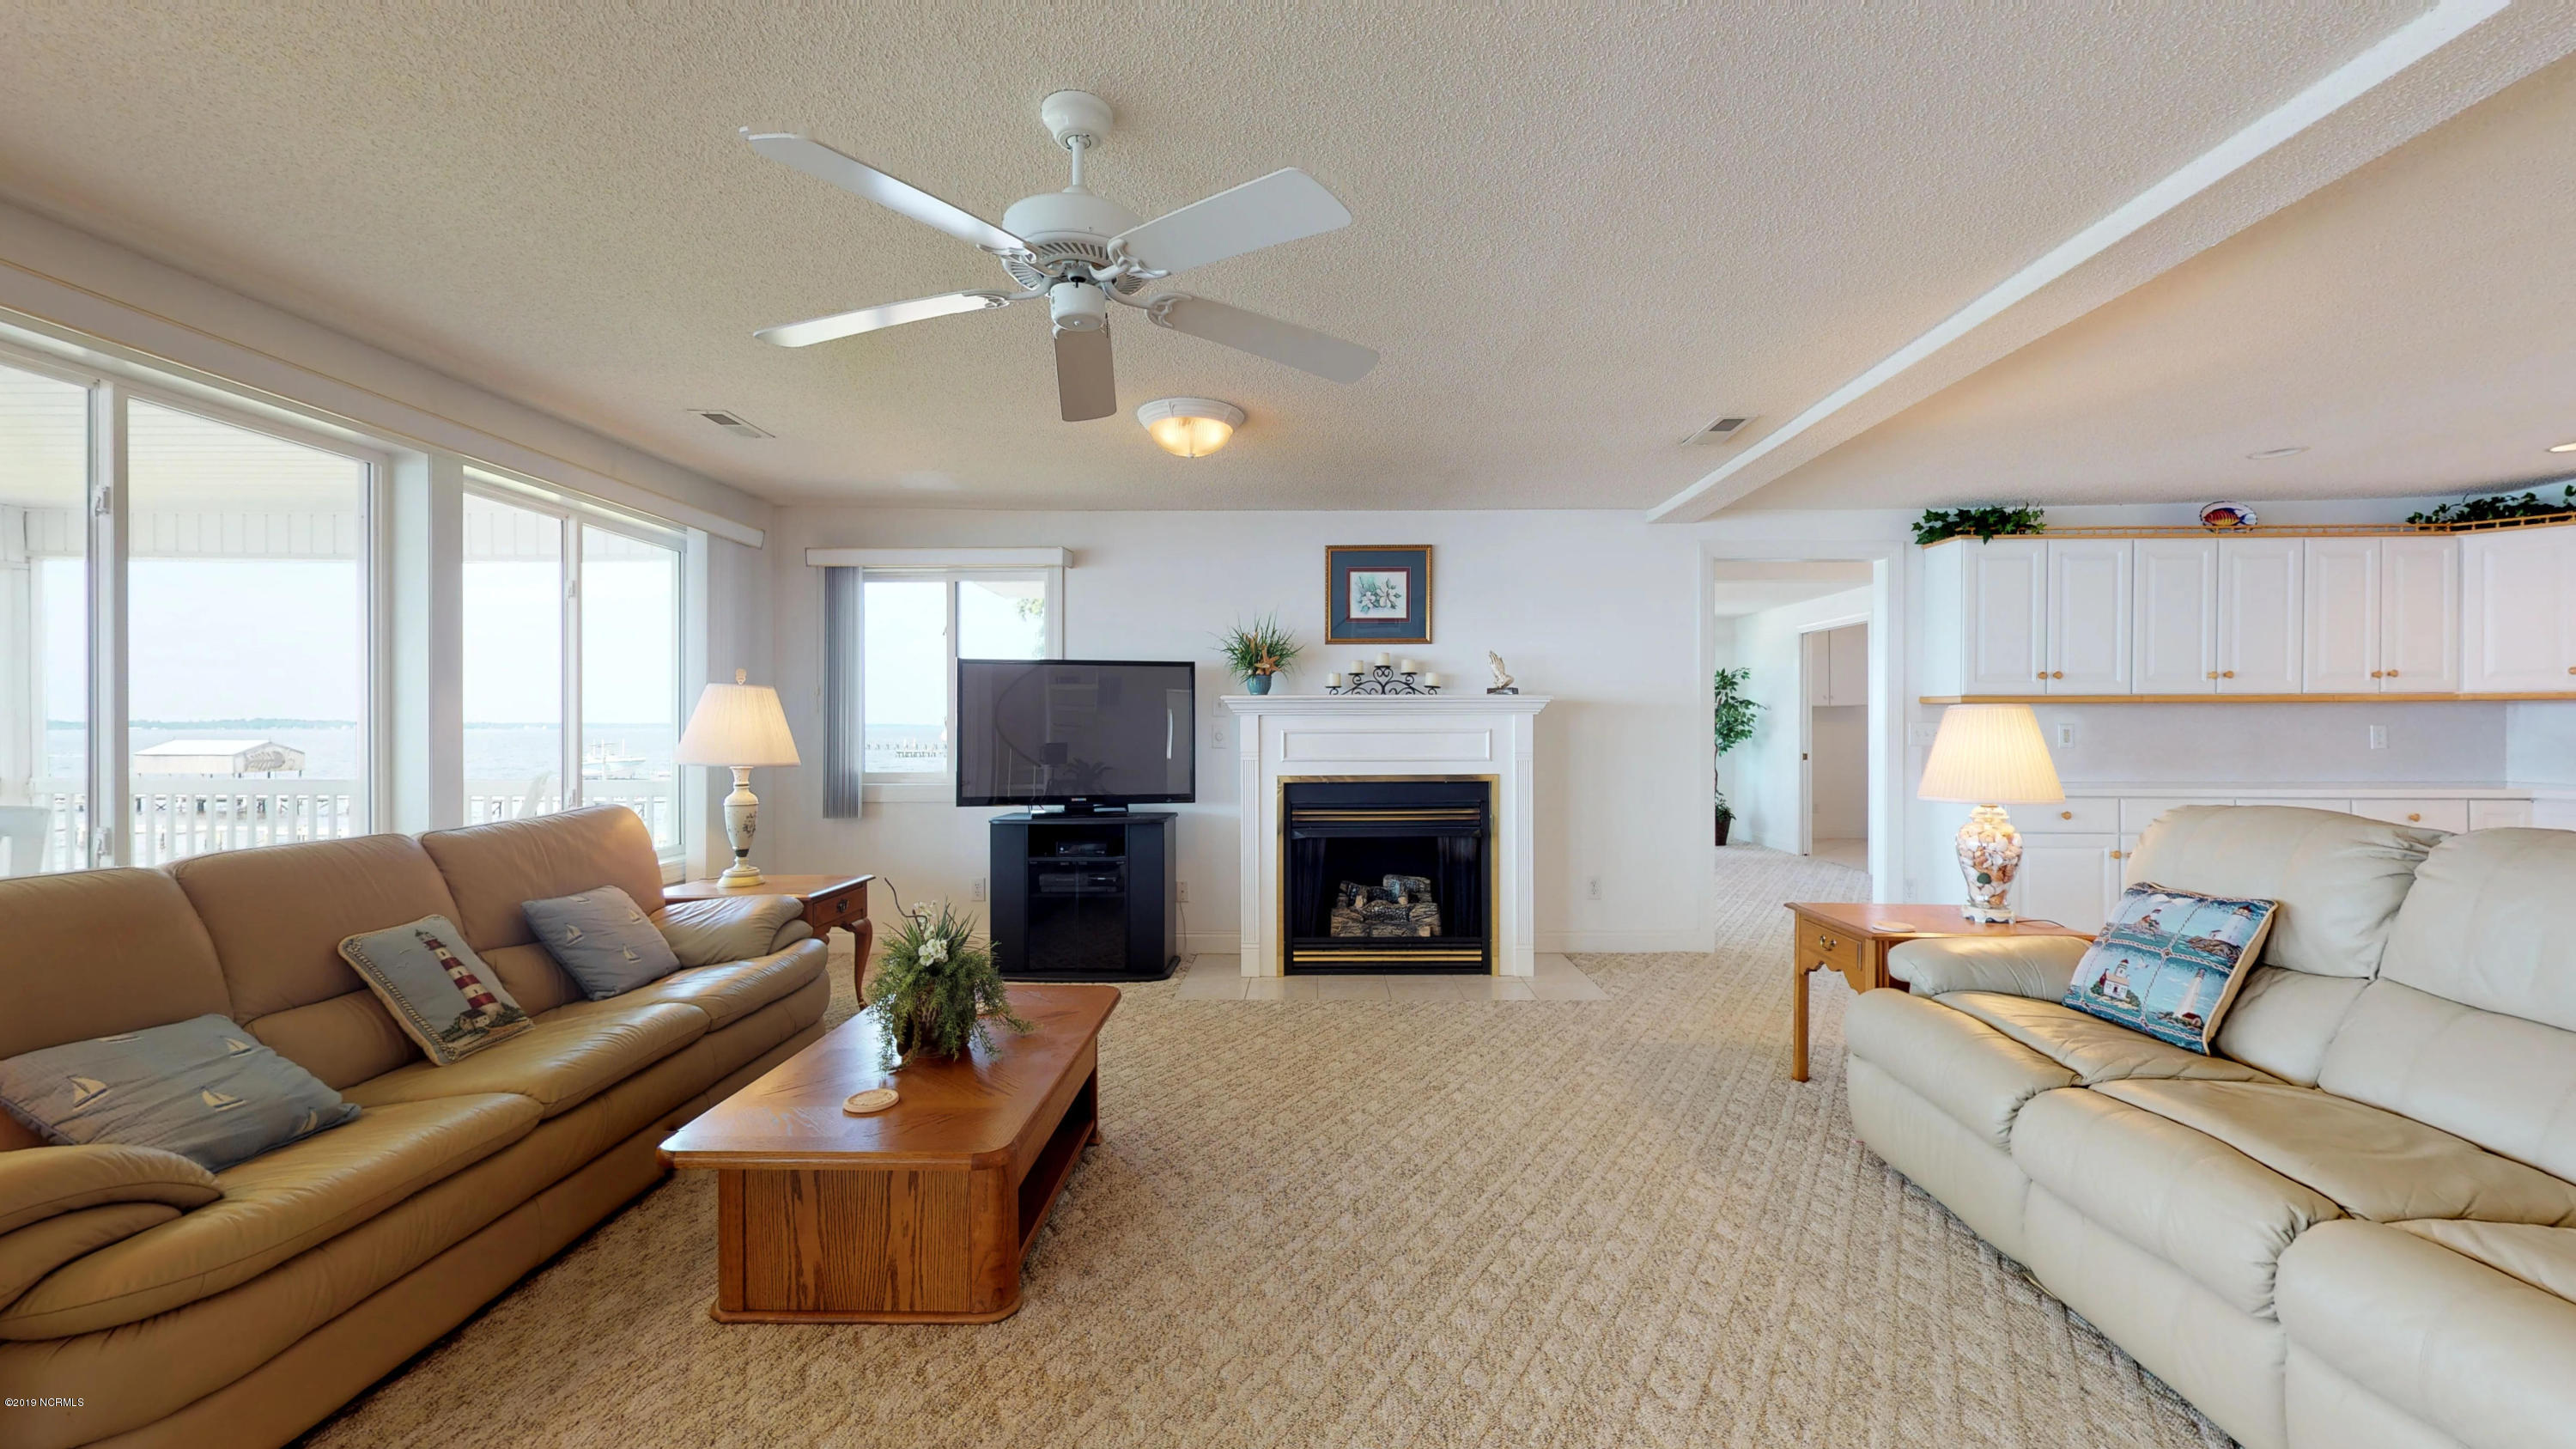 1491 Bayview Road, Bath, North Carolina 27808, 5 Bedrooms Bedrooms, 9 Rooms Rooms,3 BathroomsBathrooms,Single family residence,For sale,Bayview,100173286